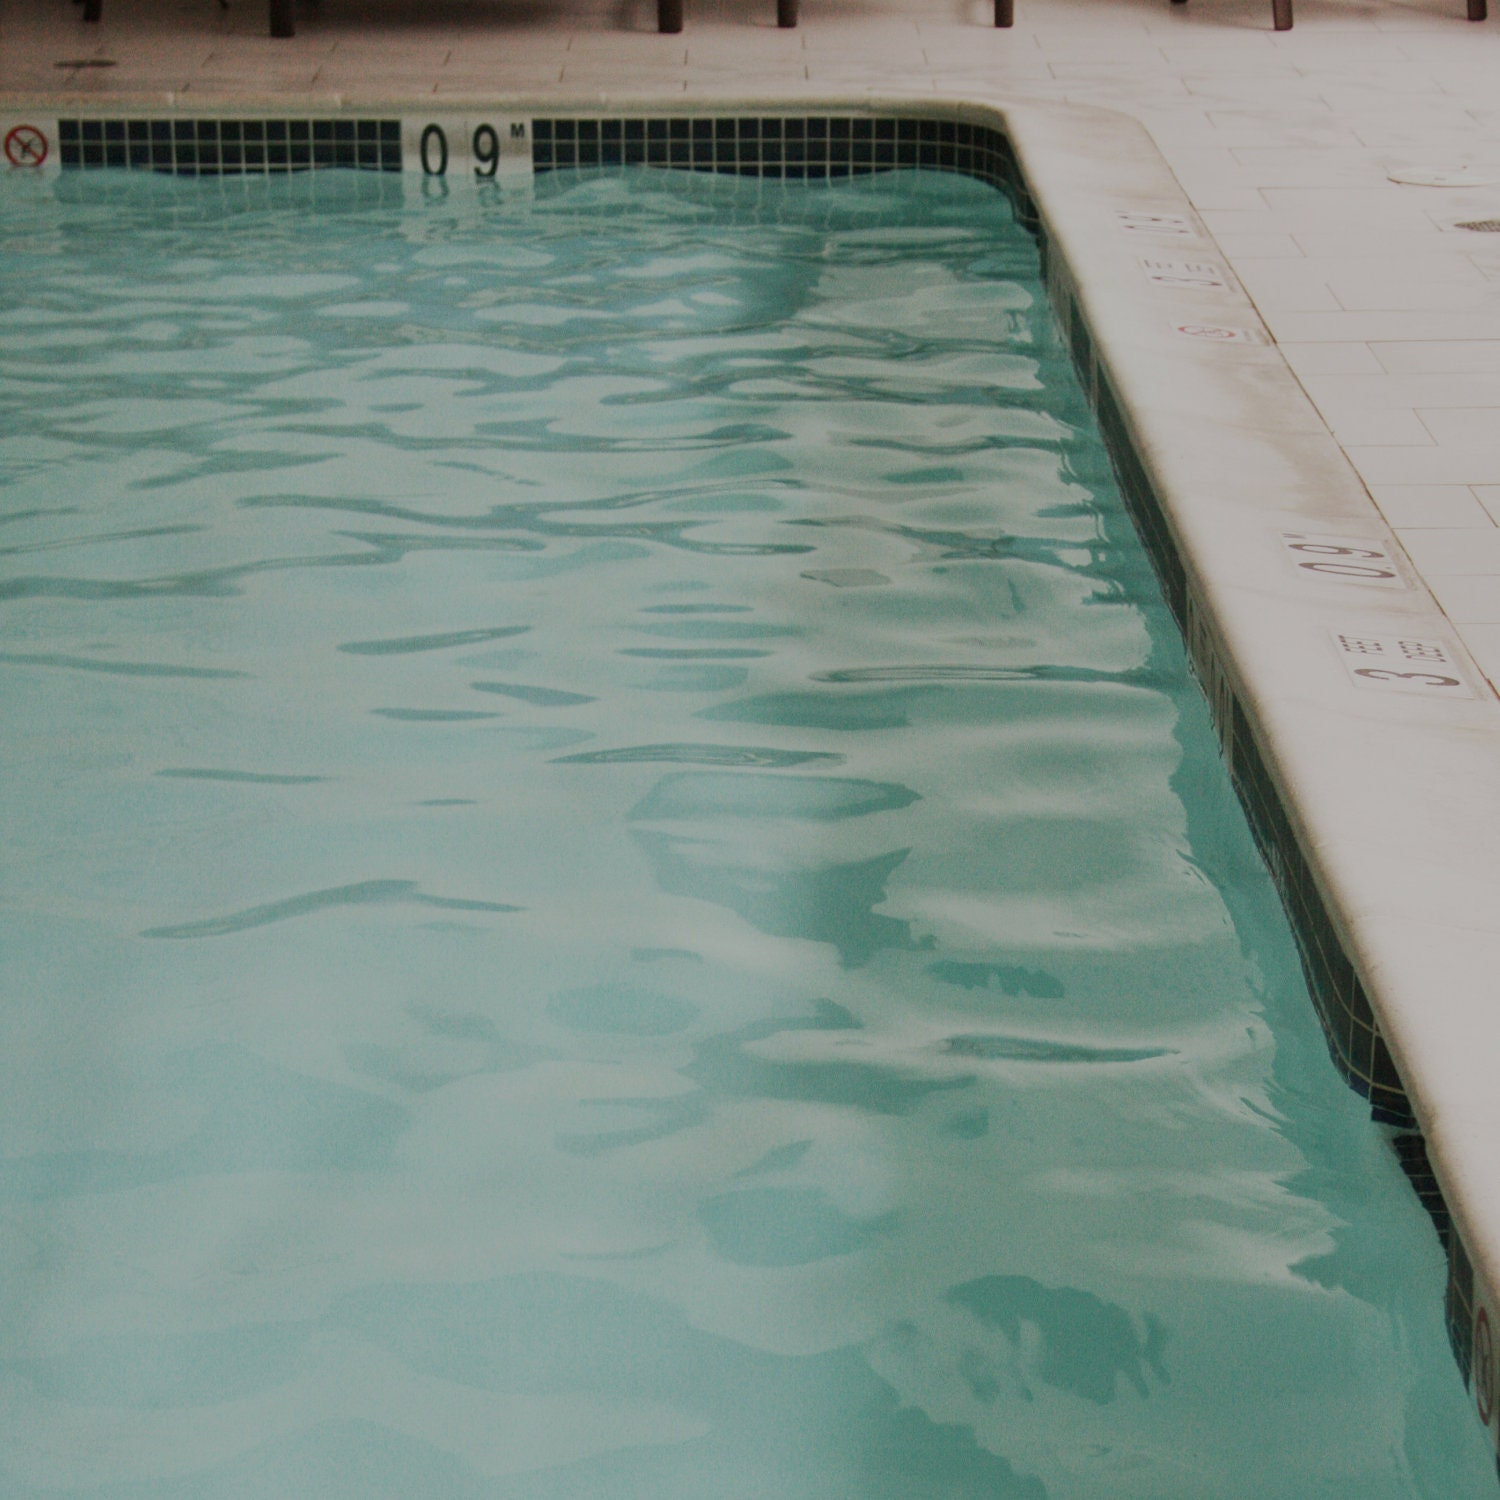 Vintage swimming pools type - Swimming pools above ground near me ...